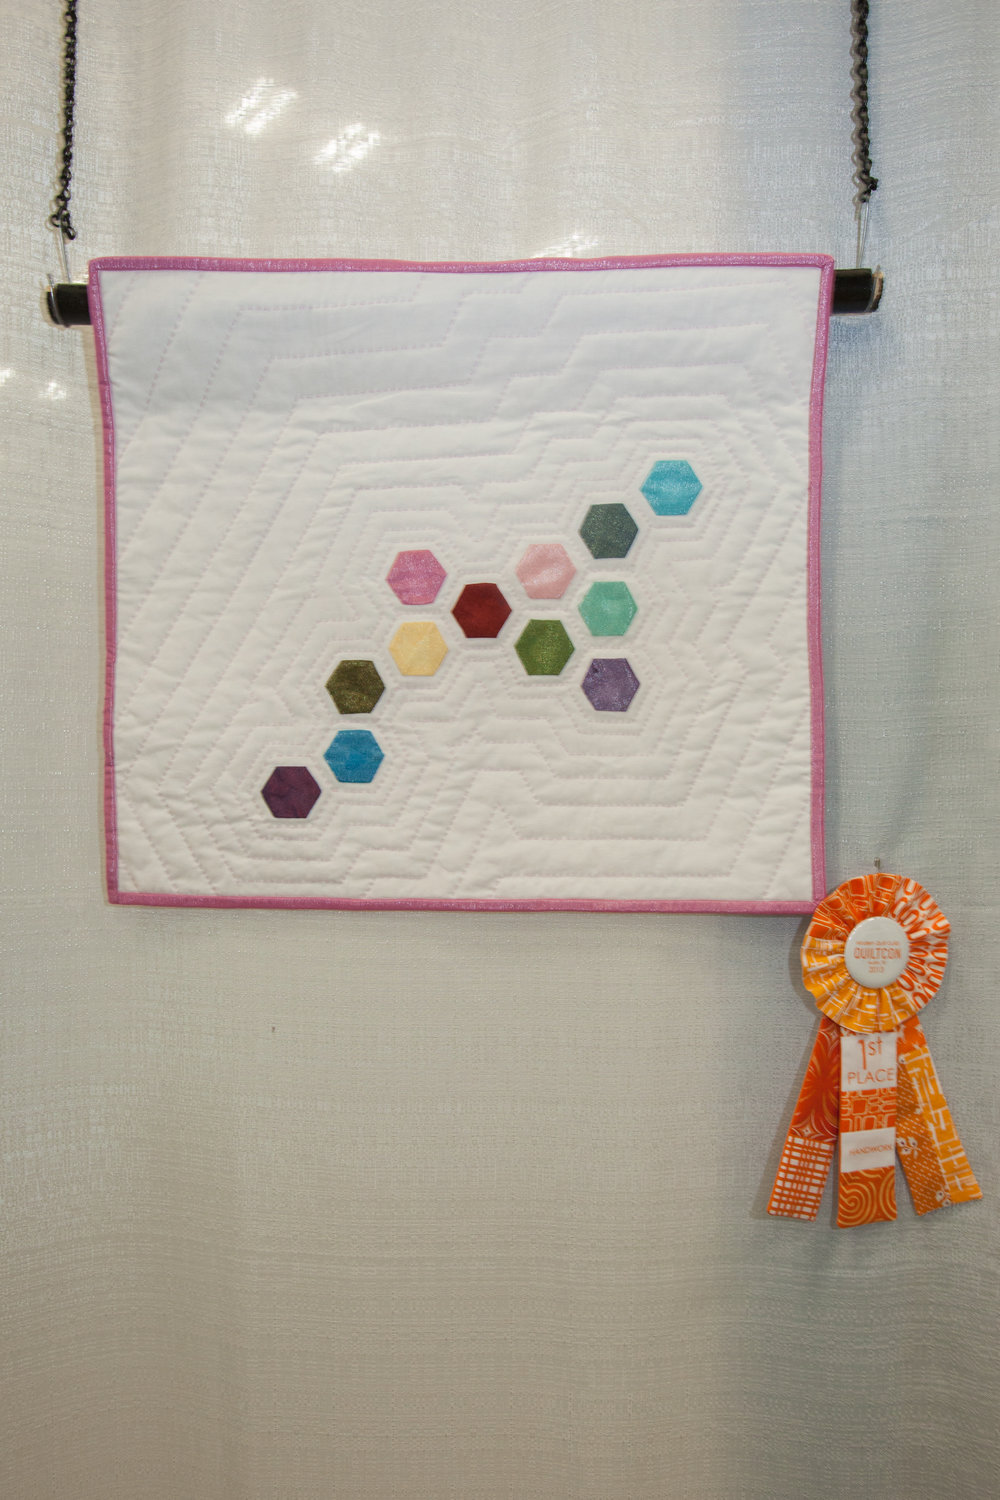 1st Place: Modern Mini  Pieced and quilted by Carolyn D. Braun